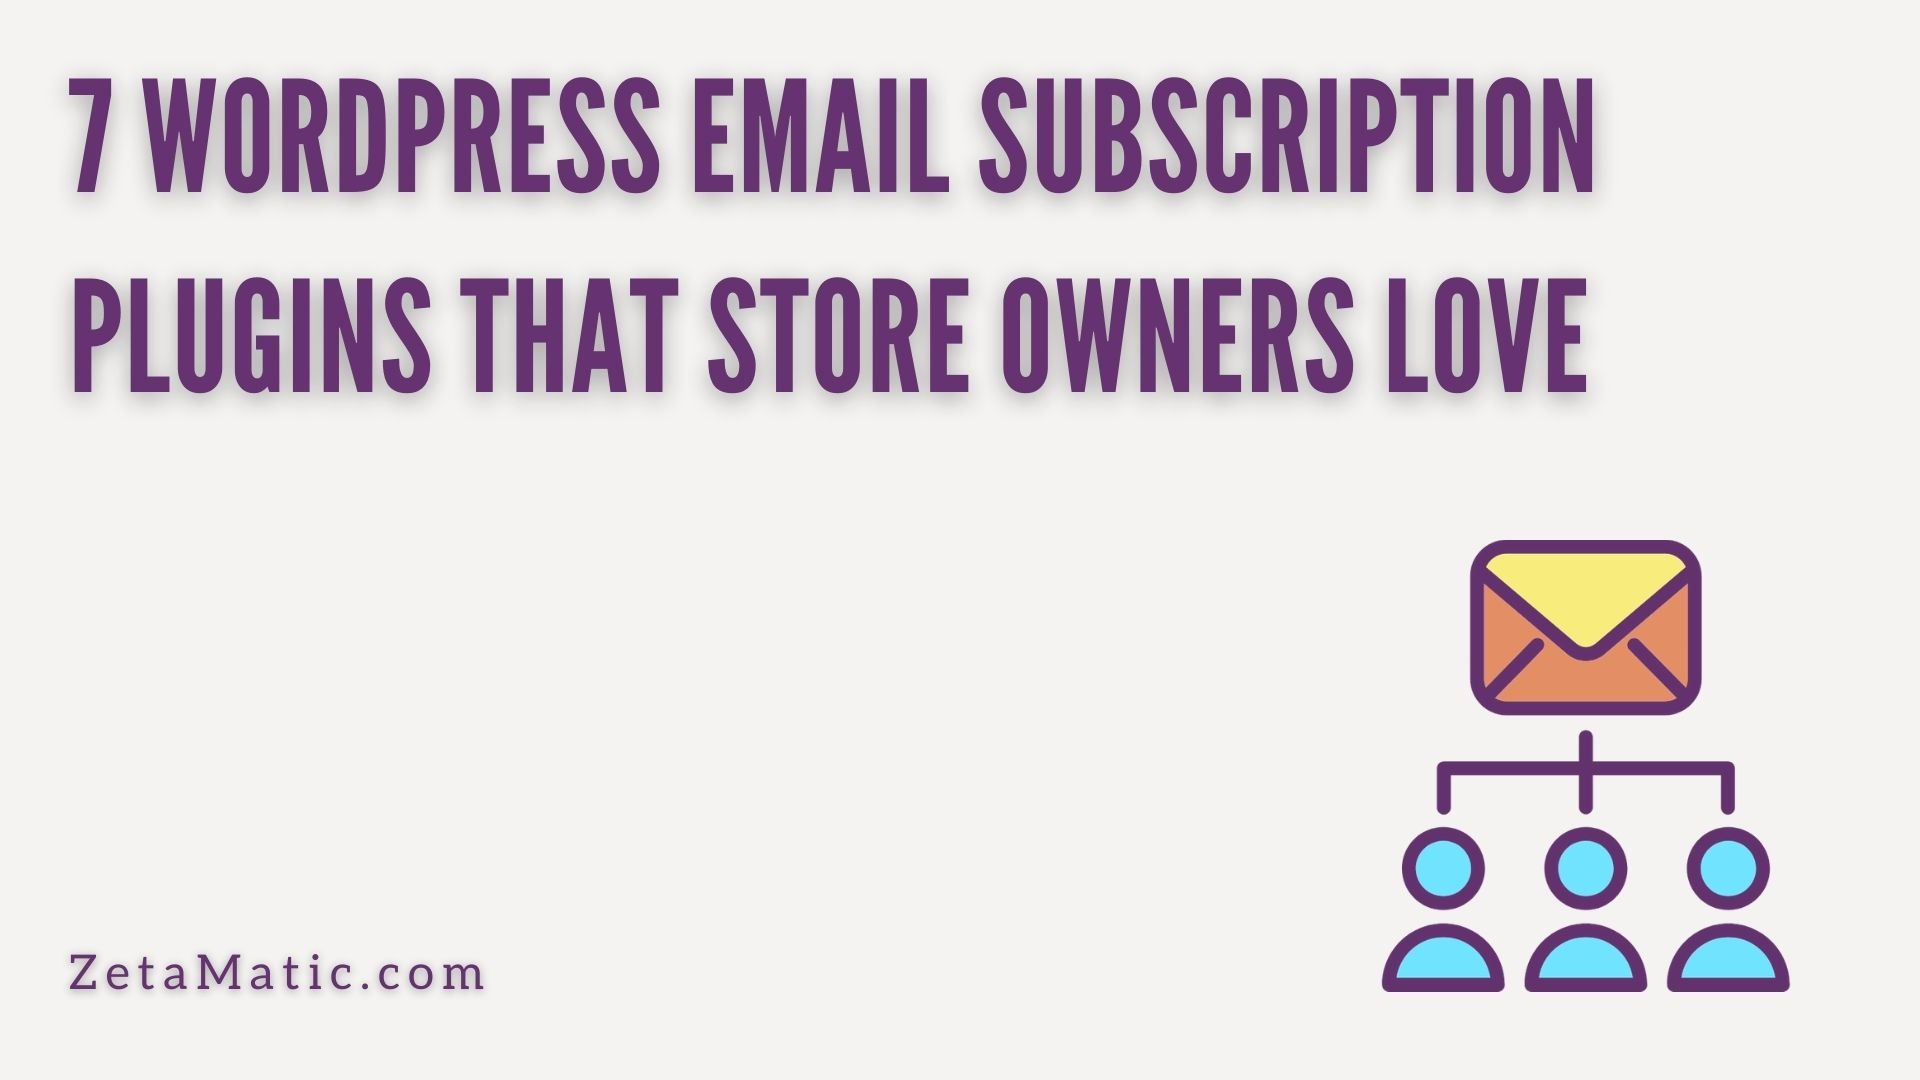 7 Wordpress Email Subscription Plugins That Store Owners Love